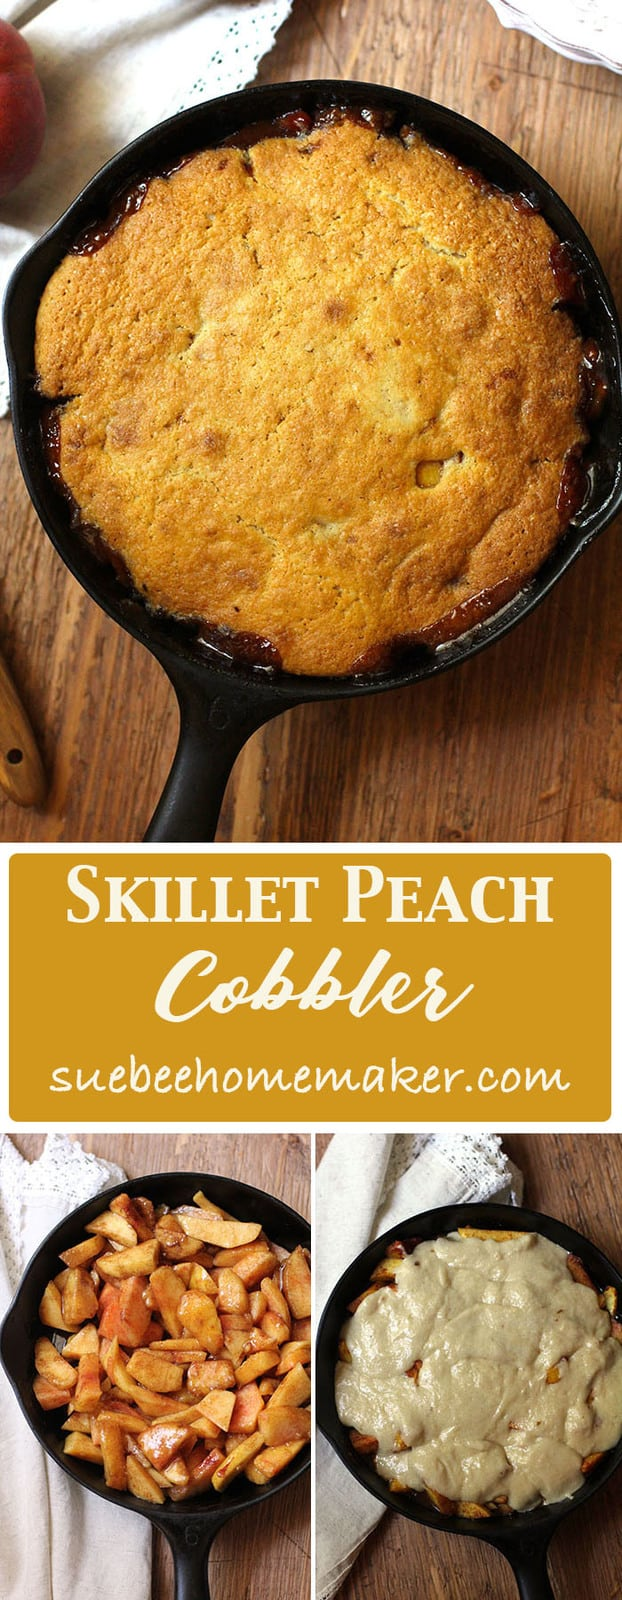 Skillet Peach Cobbler is a slightly sweet, but not-too-sweet Fall dessert that is AAAHHH-mazing with a couple scoops of vanilla ice cream. Eat it warm! | suebeehomemaker.com | #skilletpeachcobbler #peachcobbler #peaches #falldessert